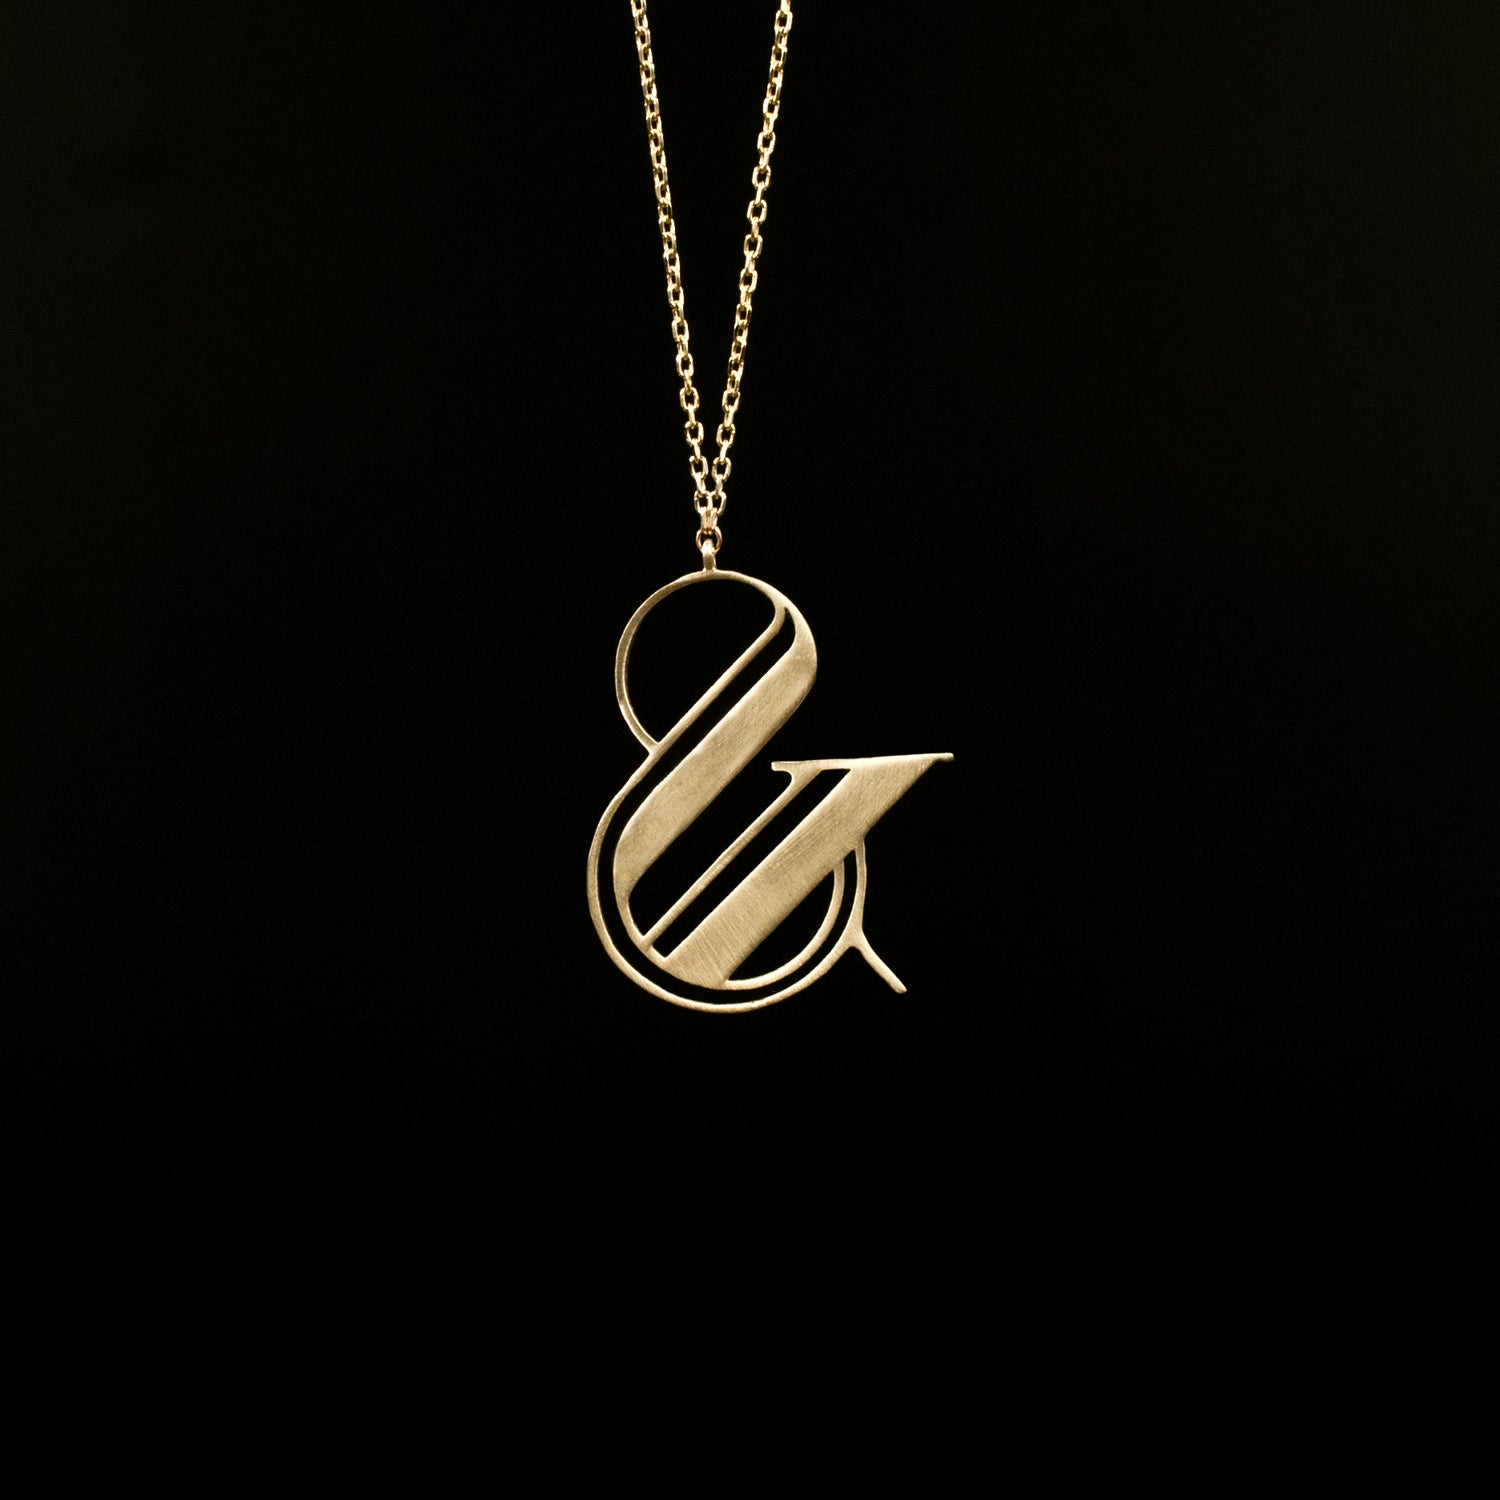 Logo Ampersand - Designed by Moshik Nadav Fashion Typography